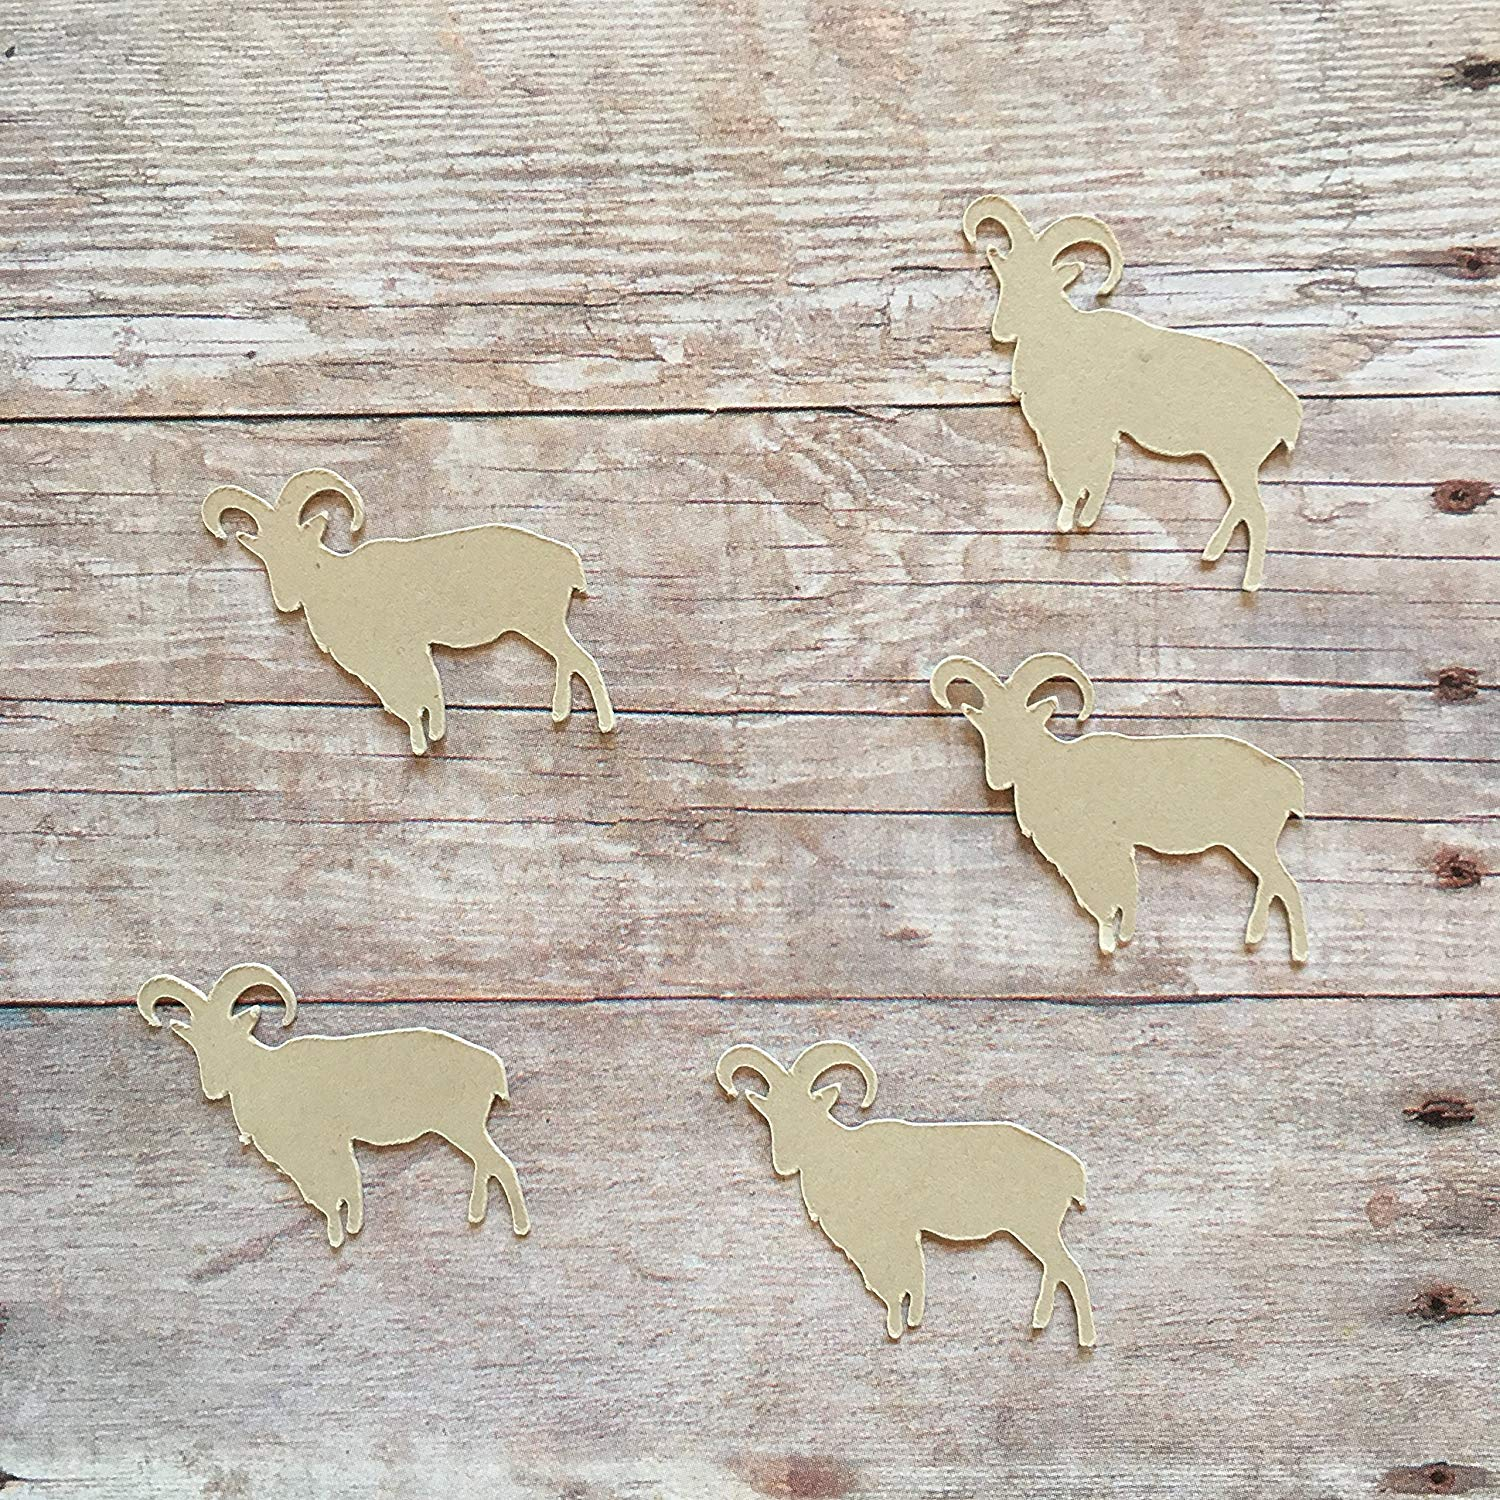 Mountain Goat Confetti, Goat Decorations, Animal Party Supplies, Woodland Theme, Animal Theme, Table Scatter, Rustic Theme, Goat Cut Out